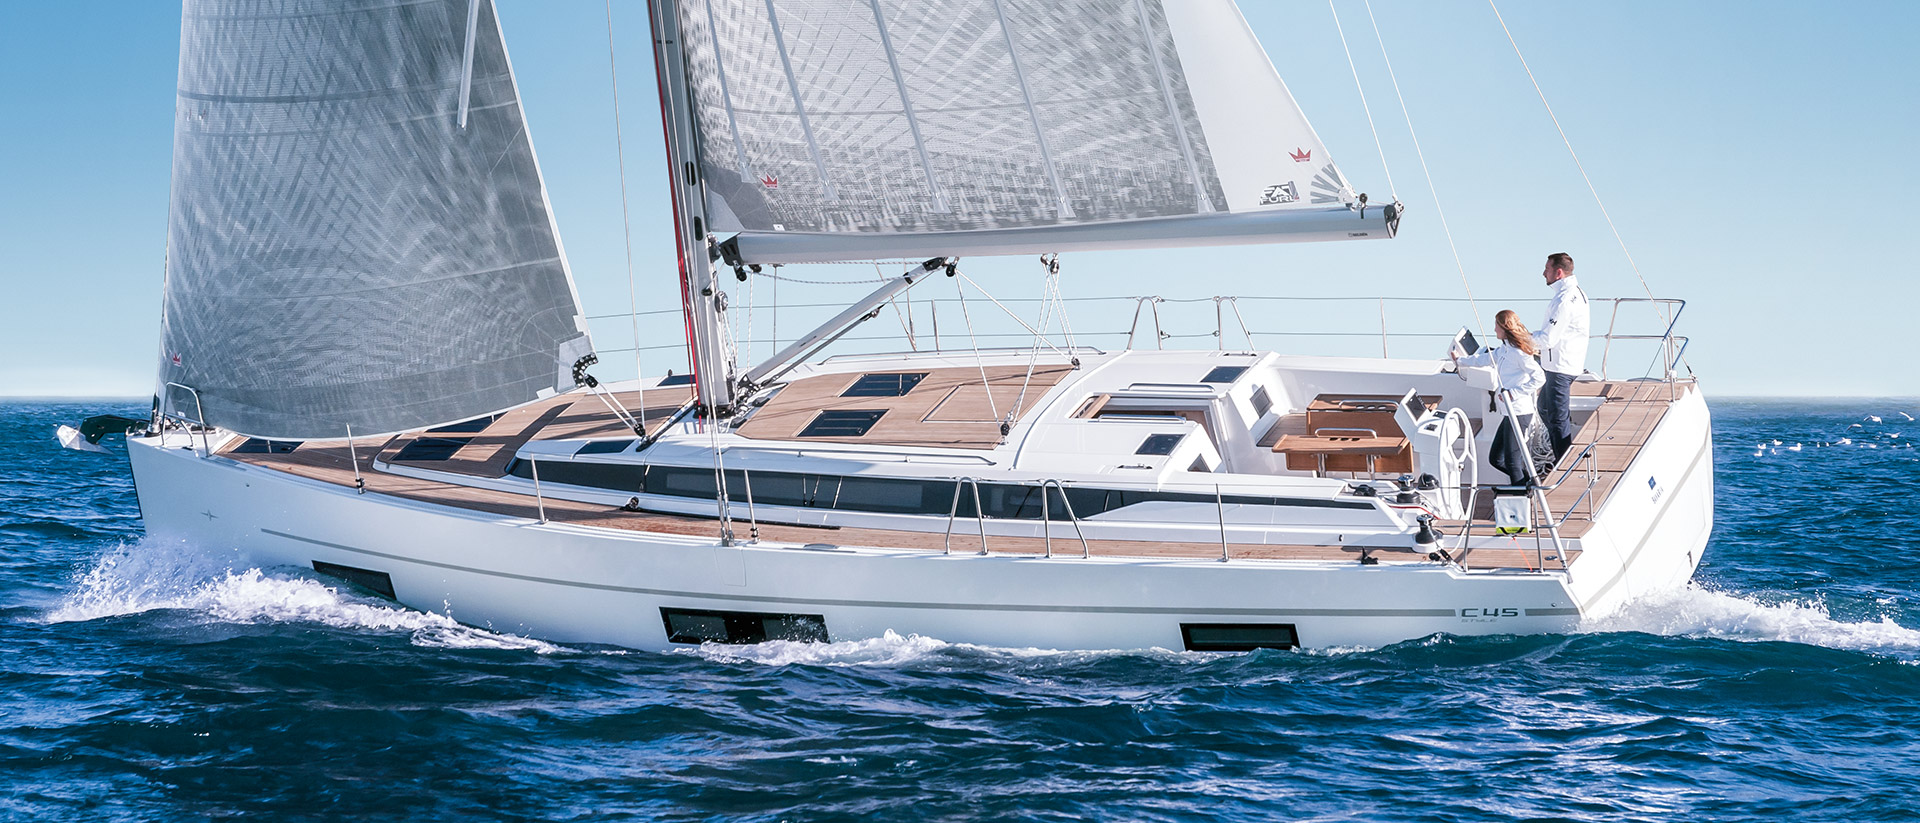 Yachtcharter Bavariac45 top